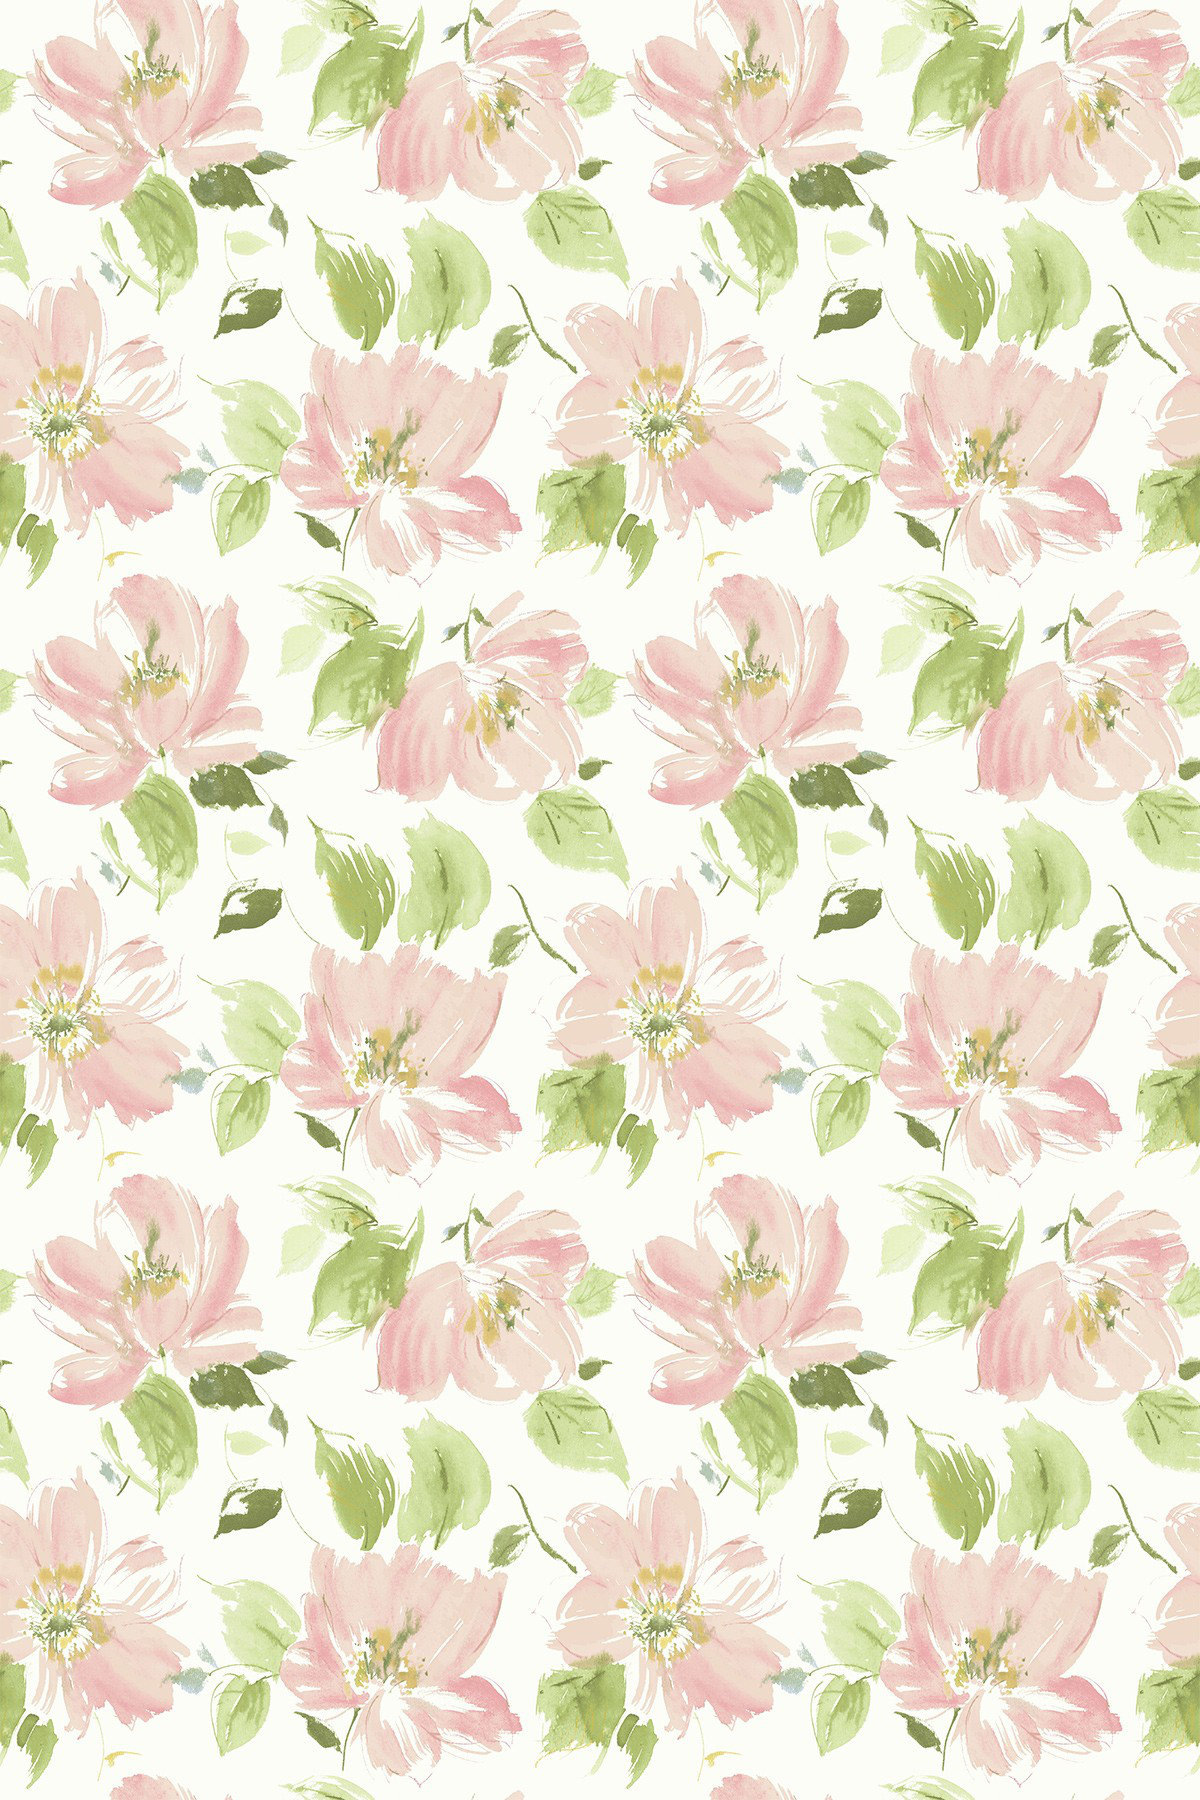 Image of Blendworth Fabric Lillie, LILLIE 1